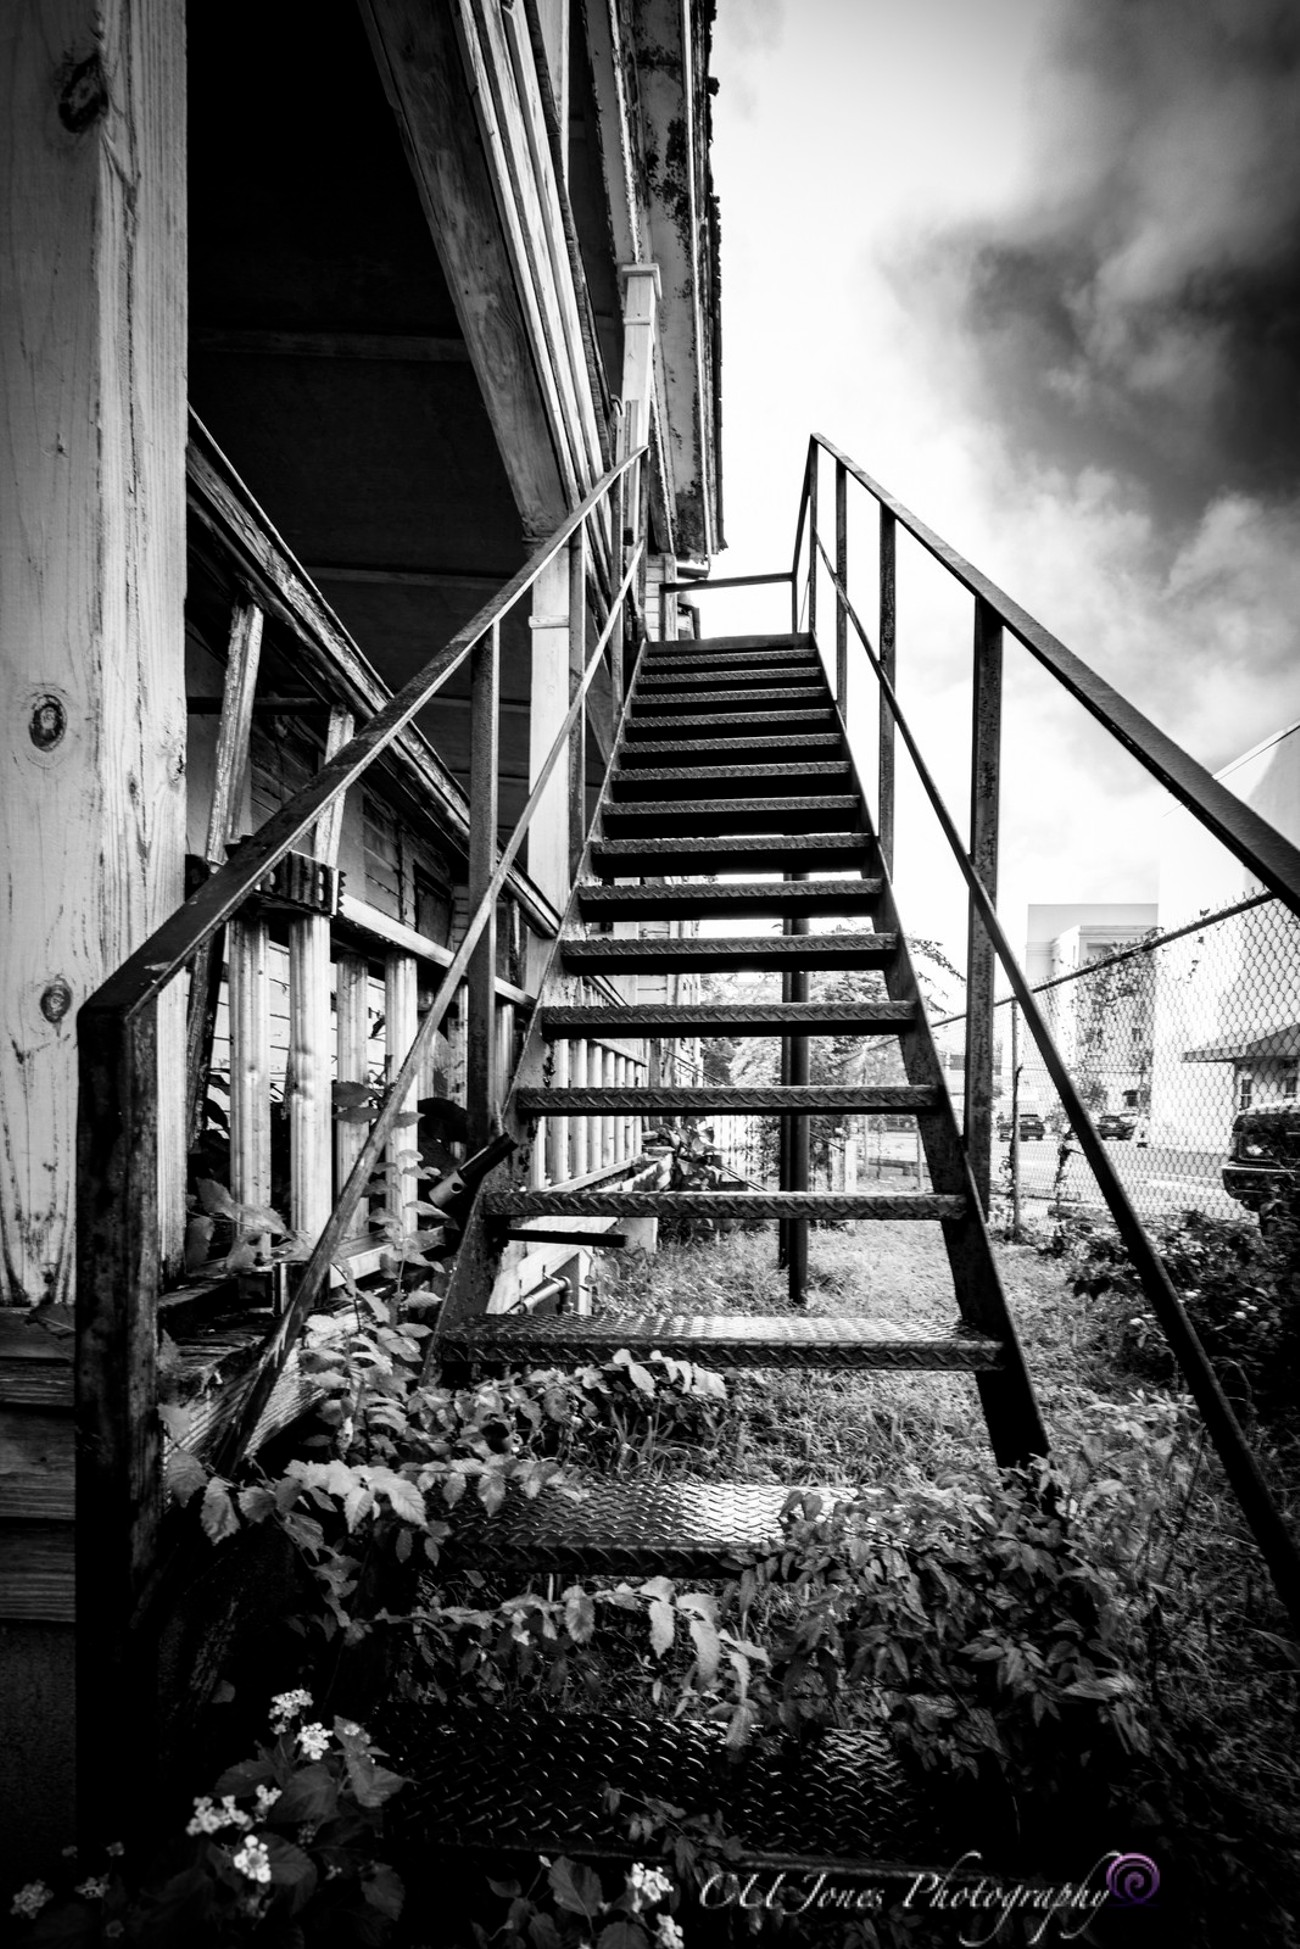 Stairs leading to somewhere